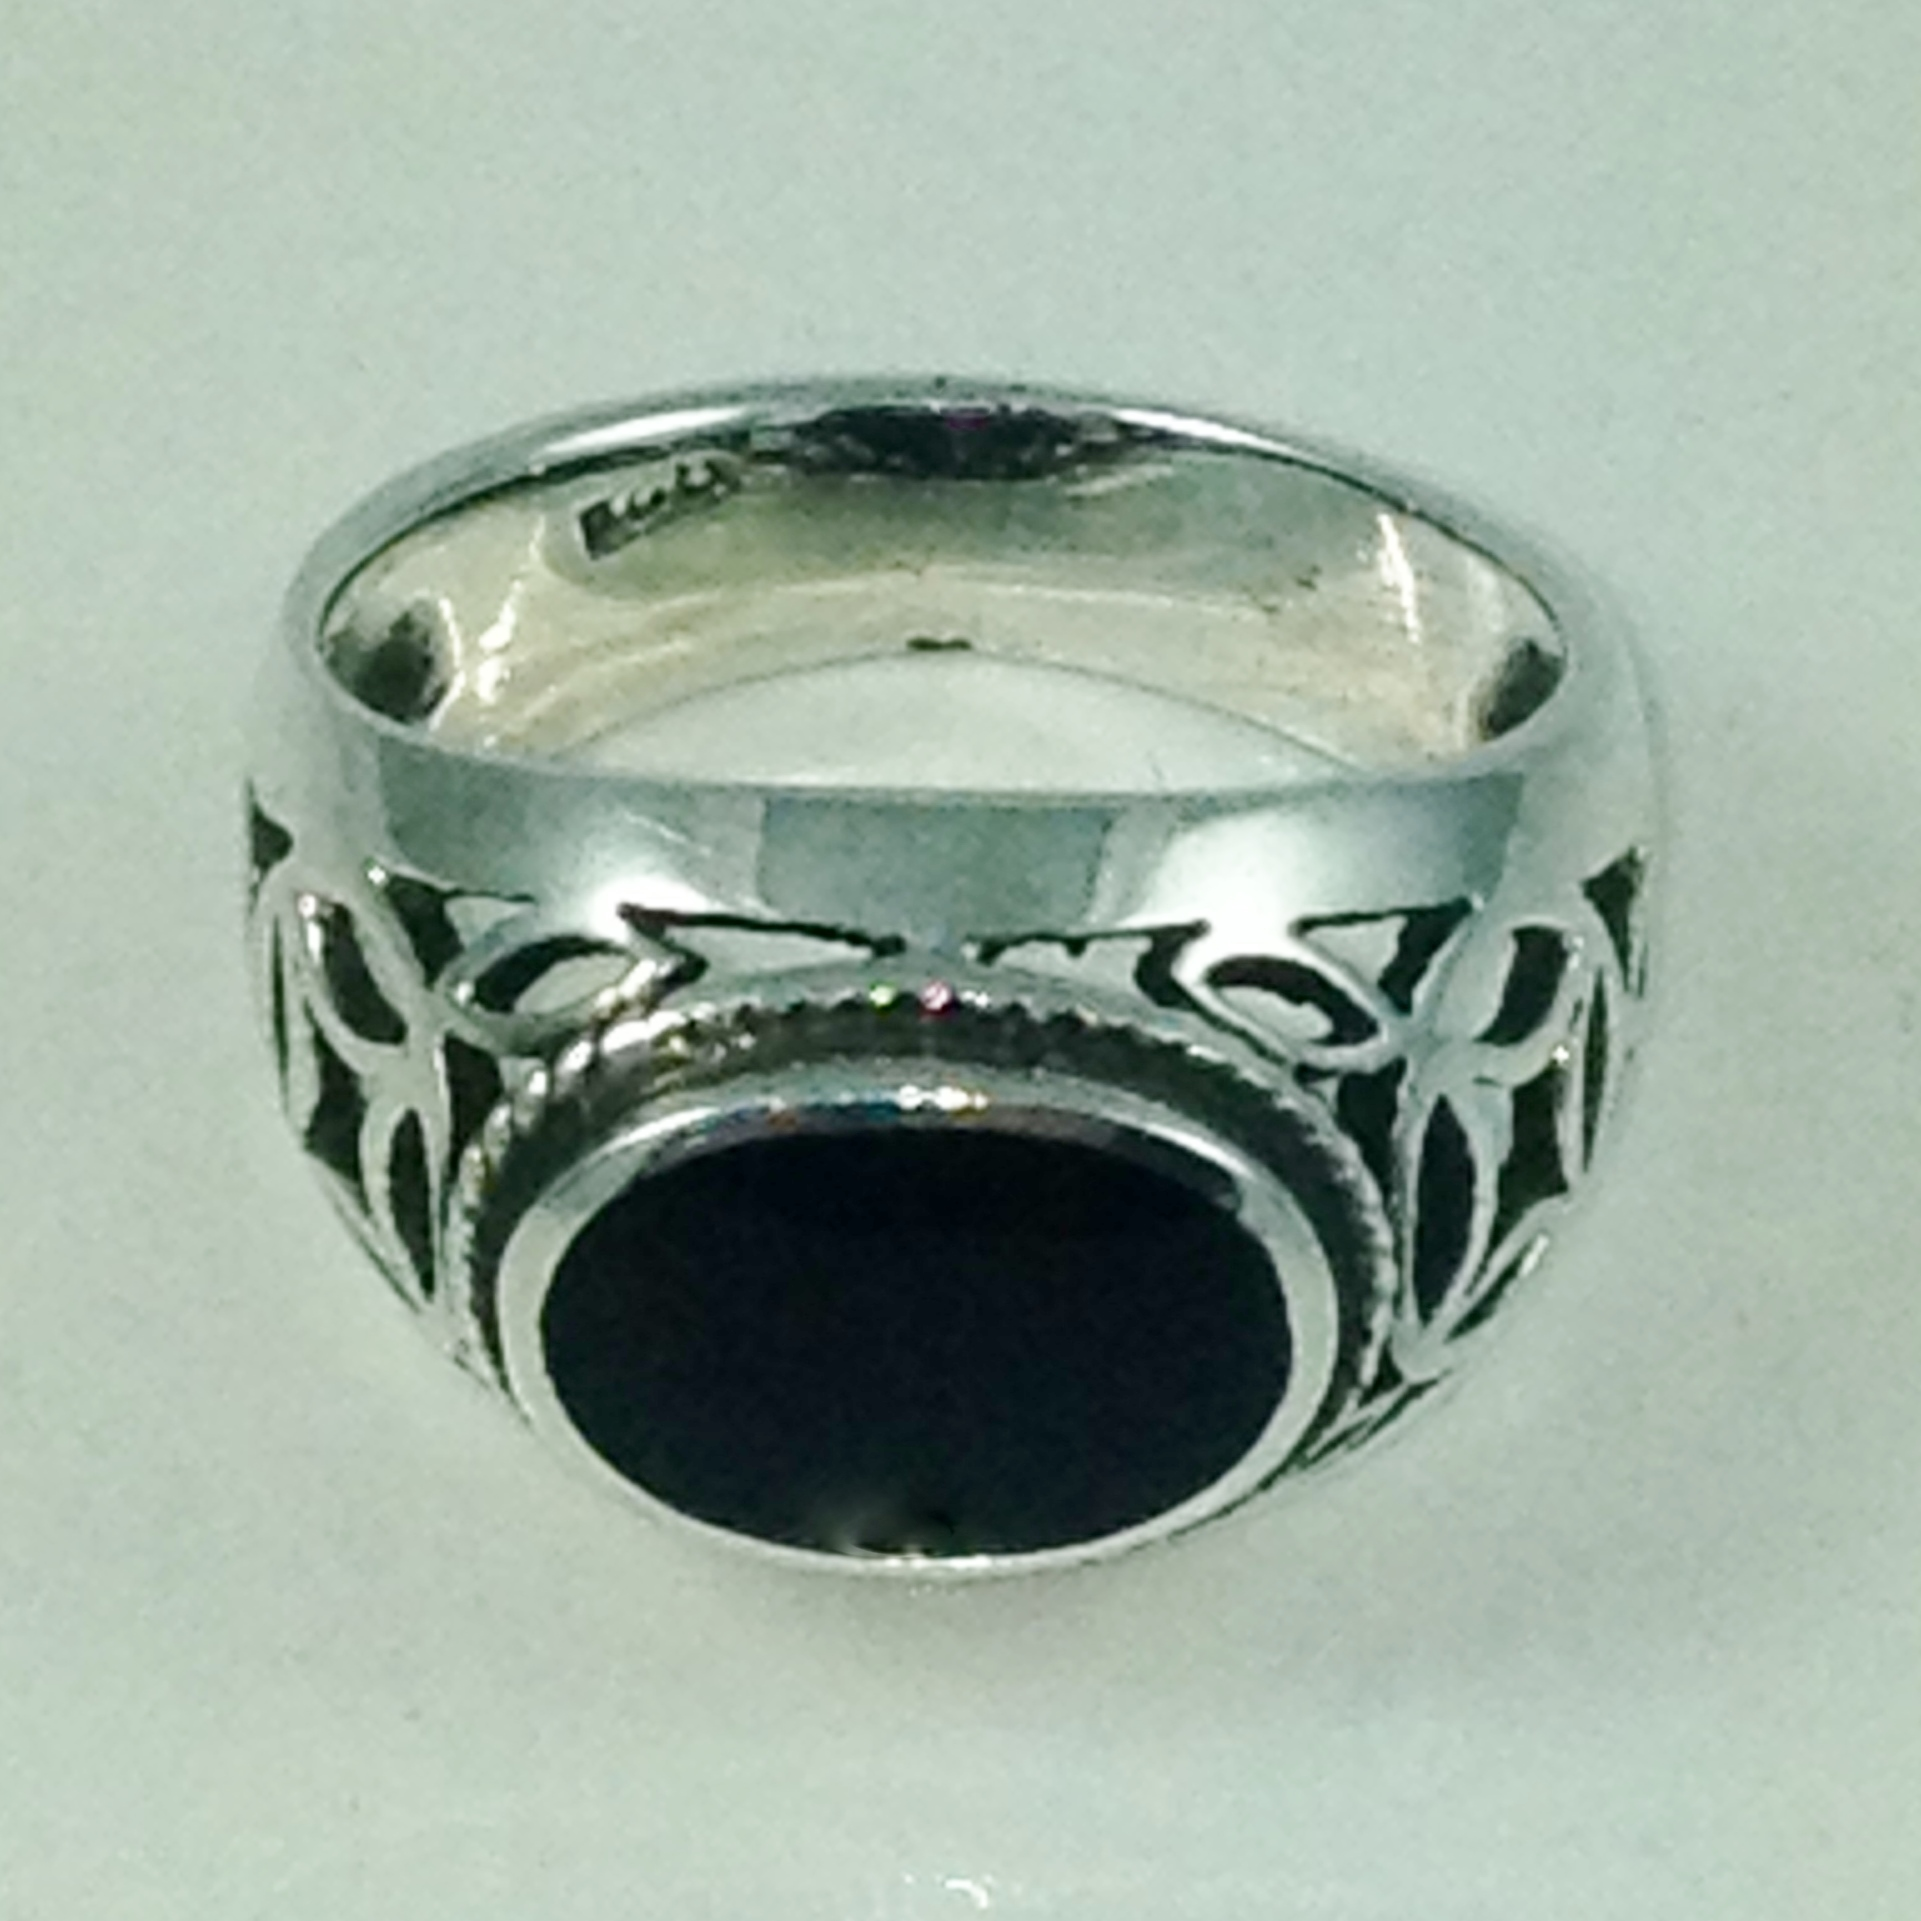 DR136 - STERLING SILVER FILIGREE ONYX CAB RING